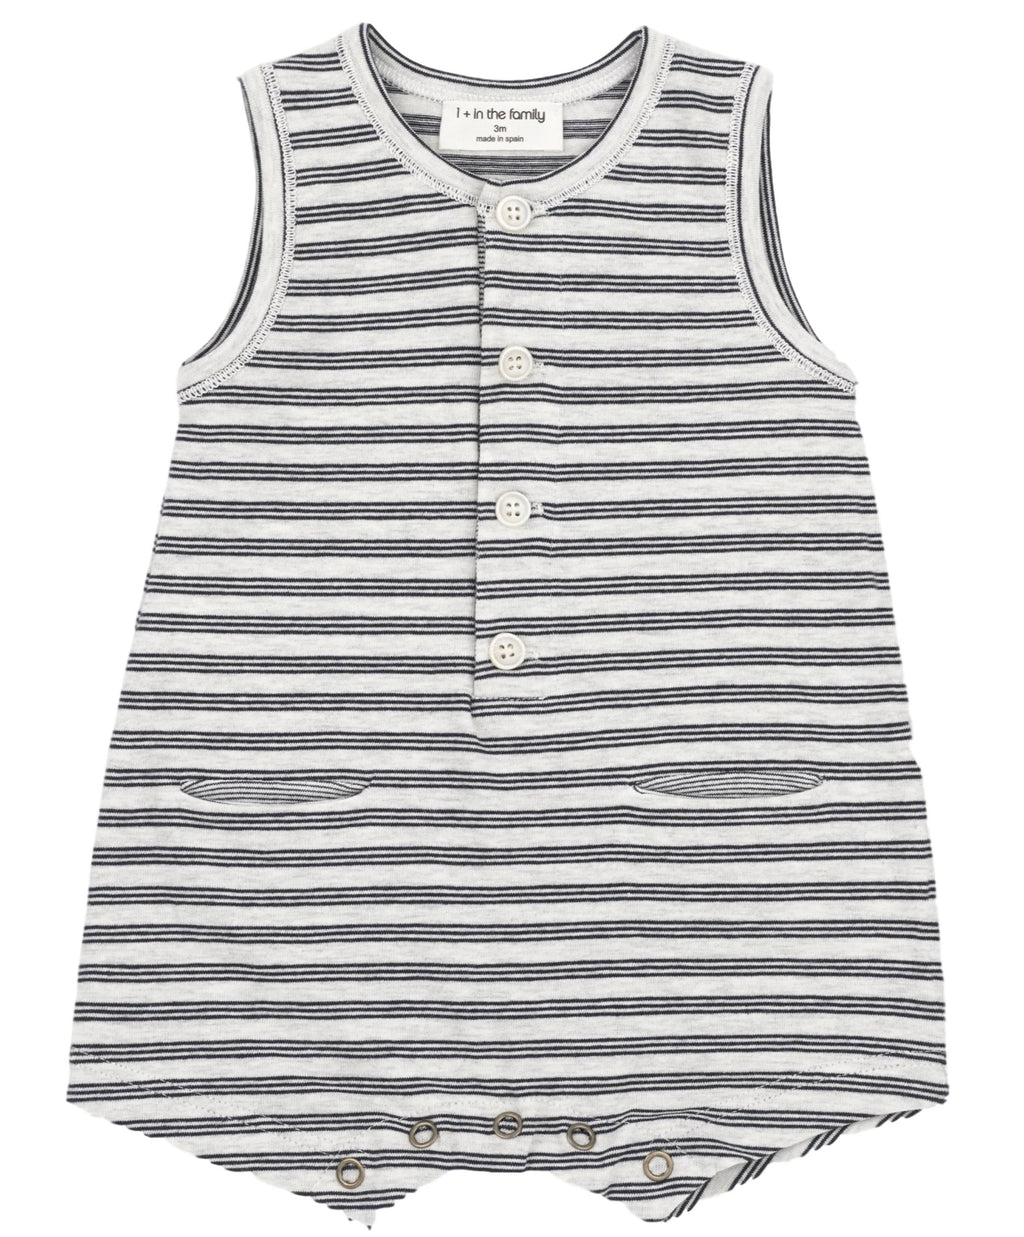 One + In the Family Baby Boy Maxime Romper